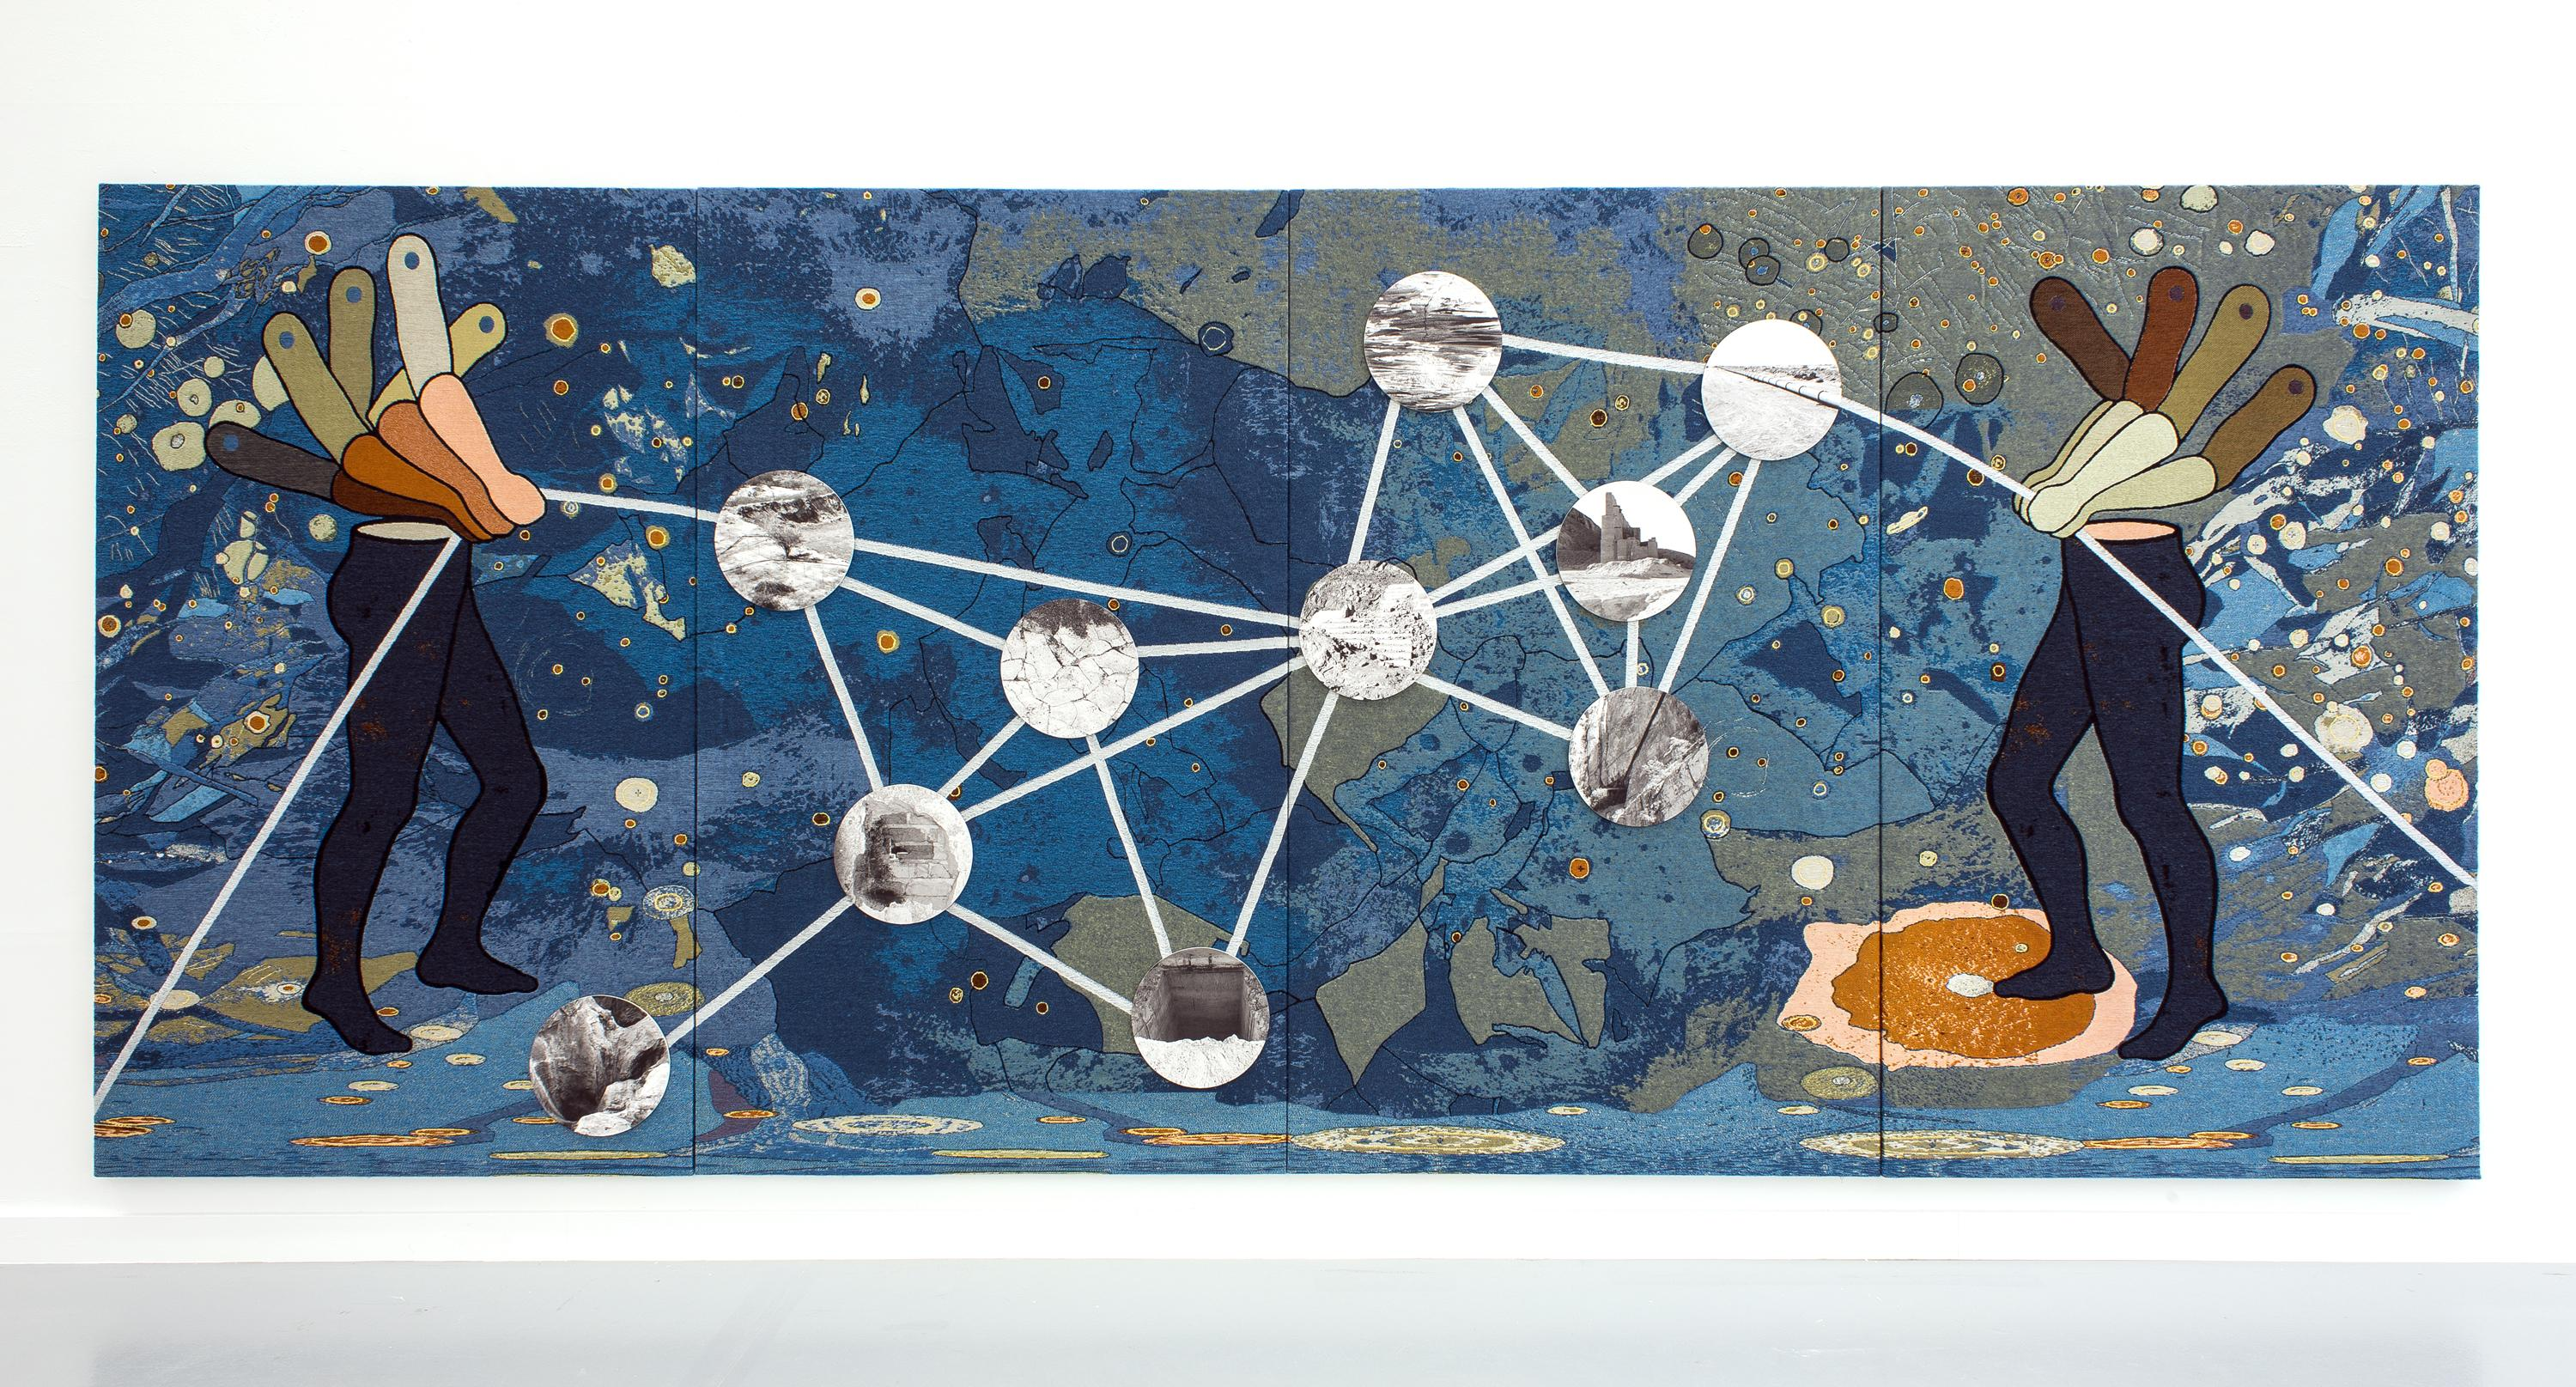 Two human half-figures hold a line connecting a constellation of circles over a blue marbled background.